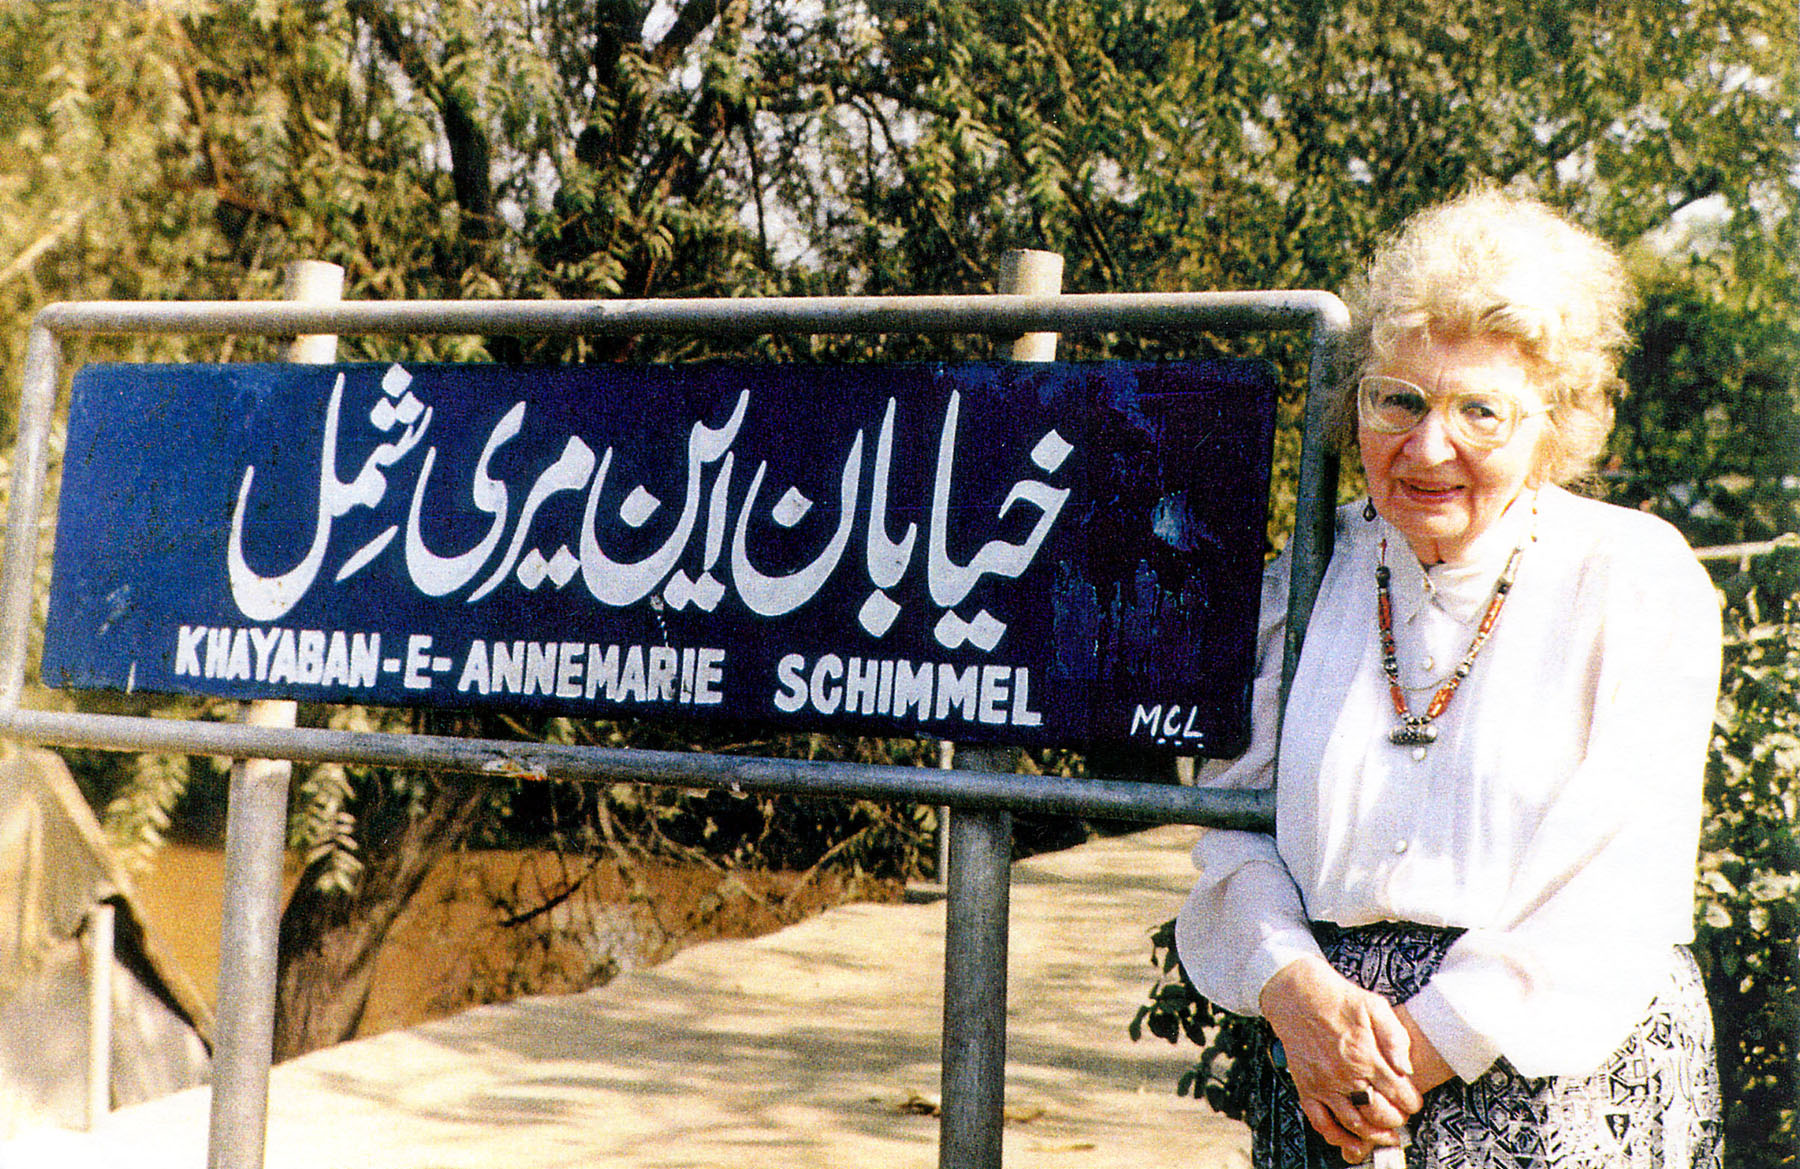 Annemarie Schimmel, whom we are remembering today, has been a larger than life scholar in the great tradition of German scholarship